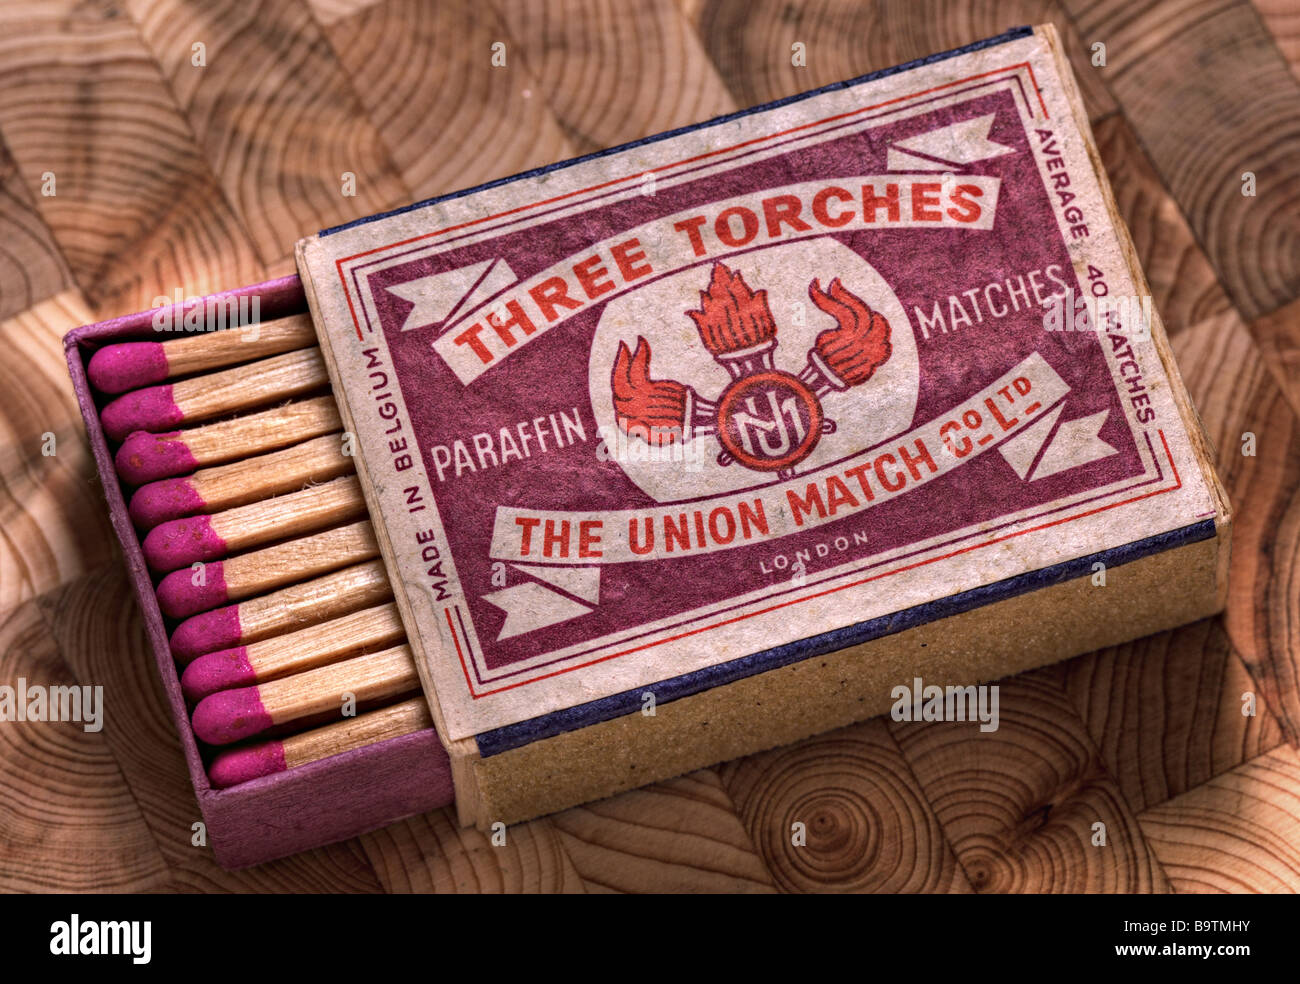 Vintage matchbox from 1960's - Stock Image